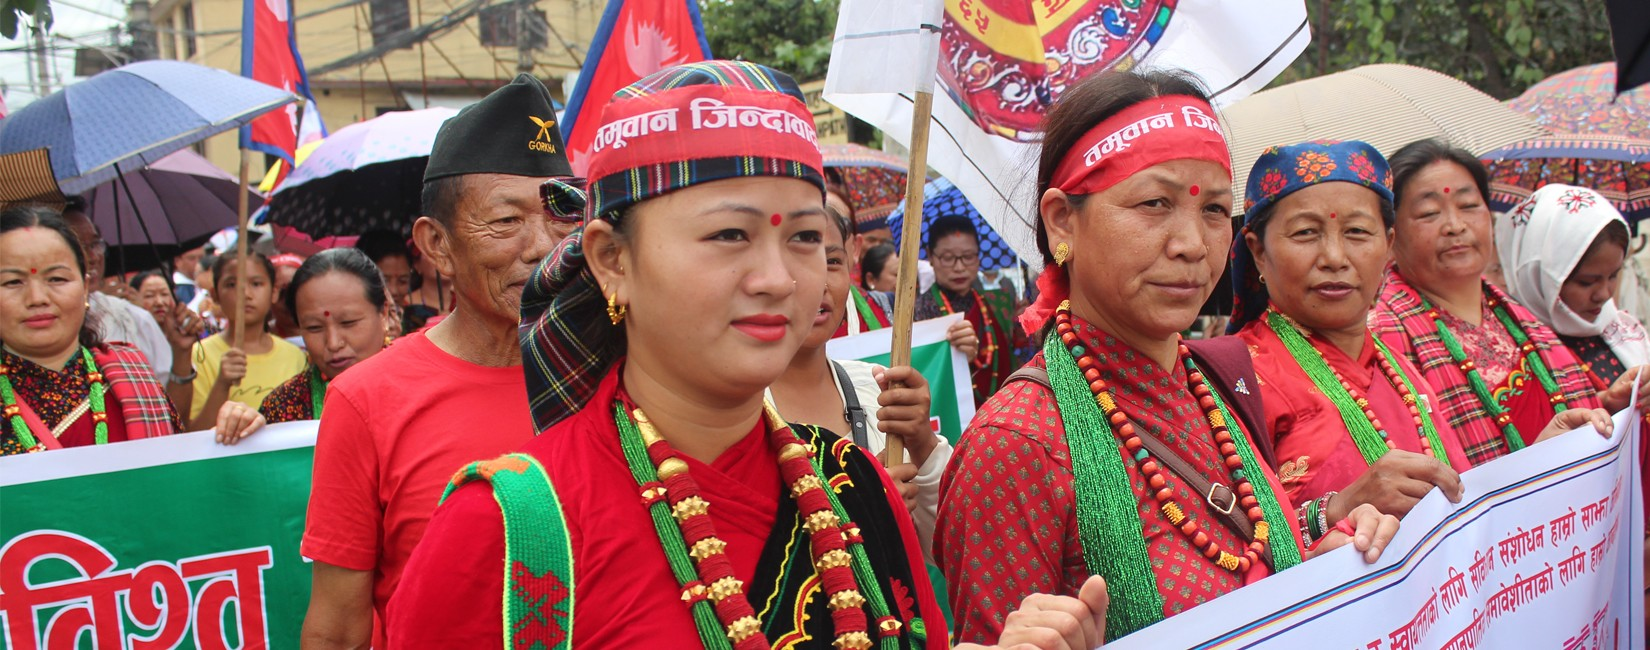 International Day of World's Indigenous Peoples 2019 observed in Nepal